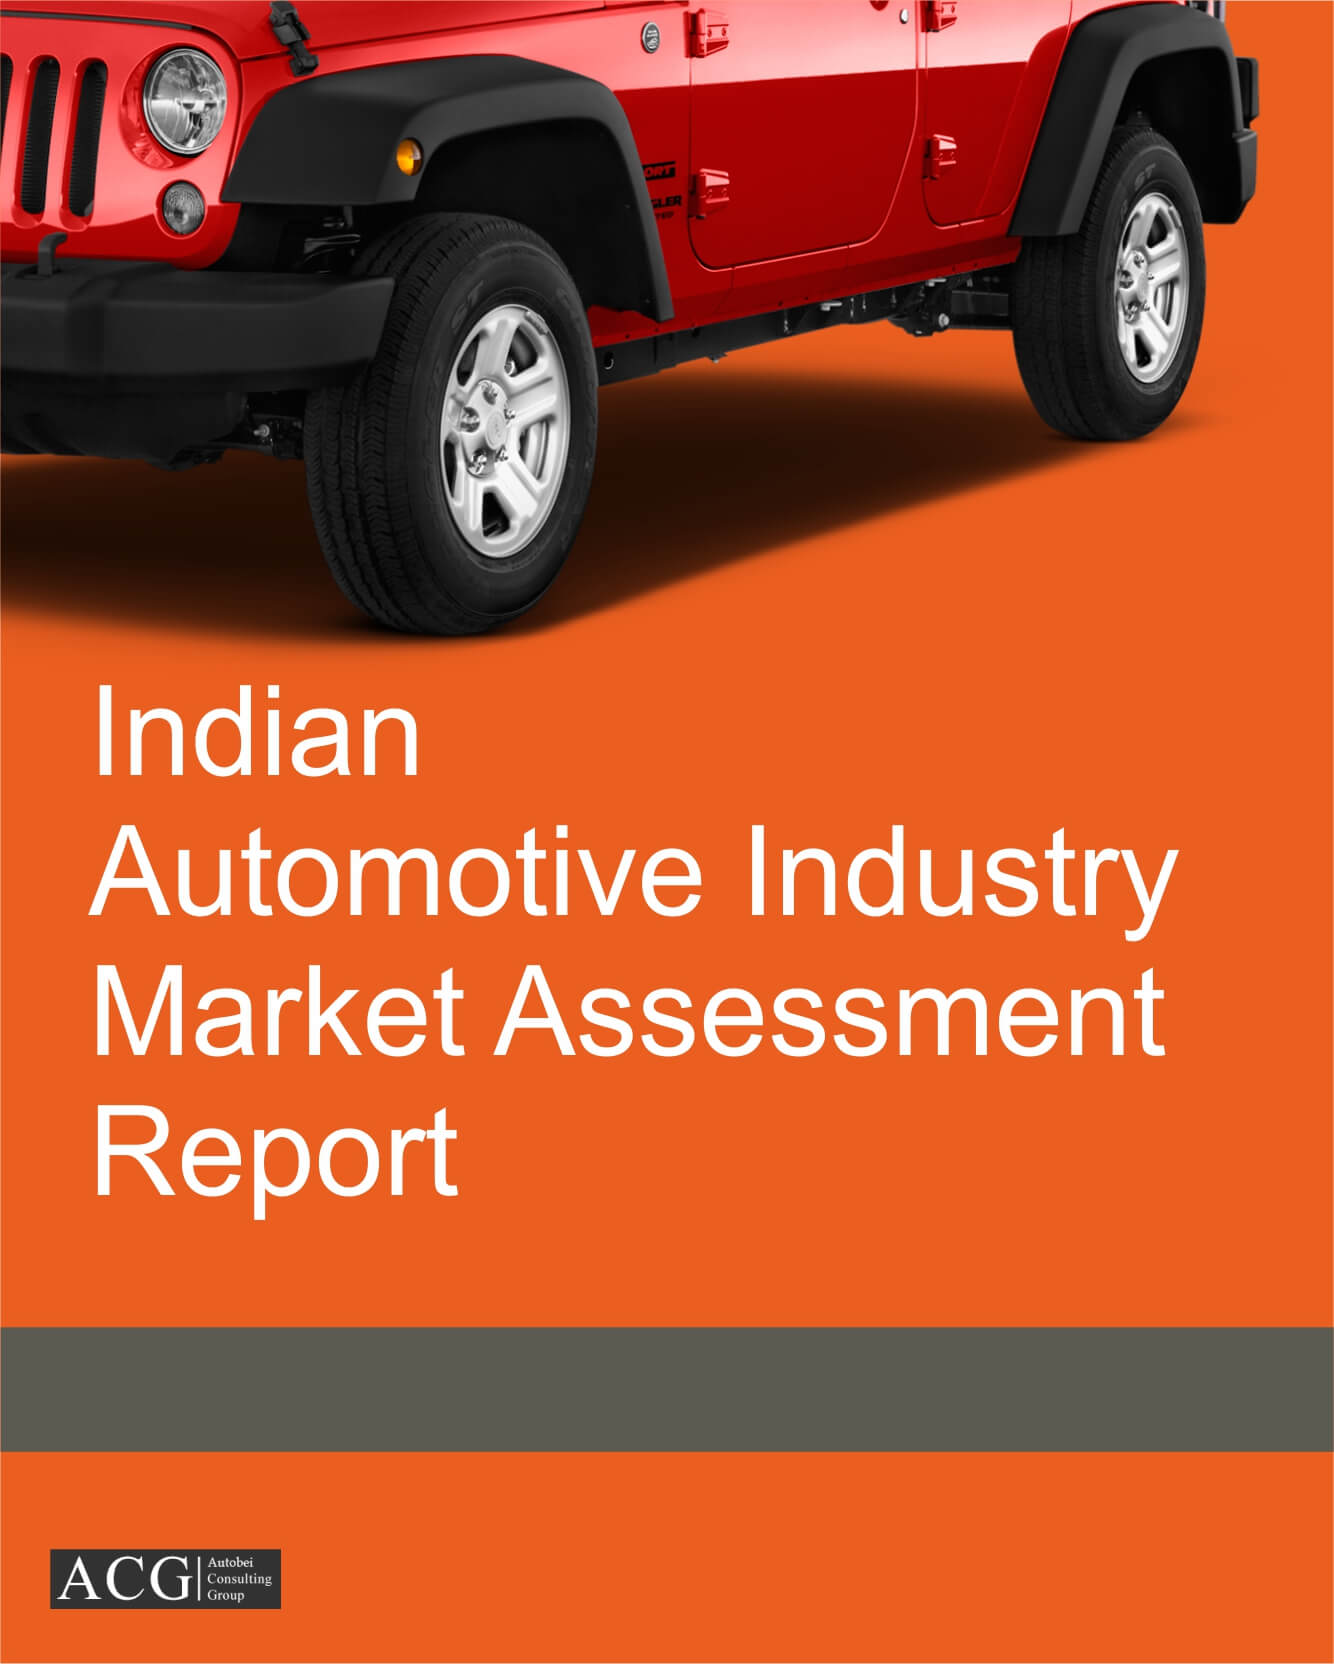 Indian Automotive Industry Market Assessment Report